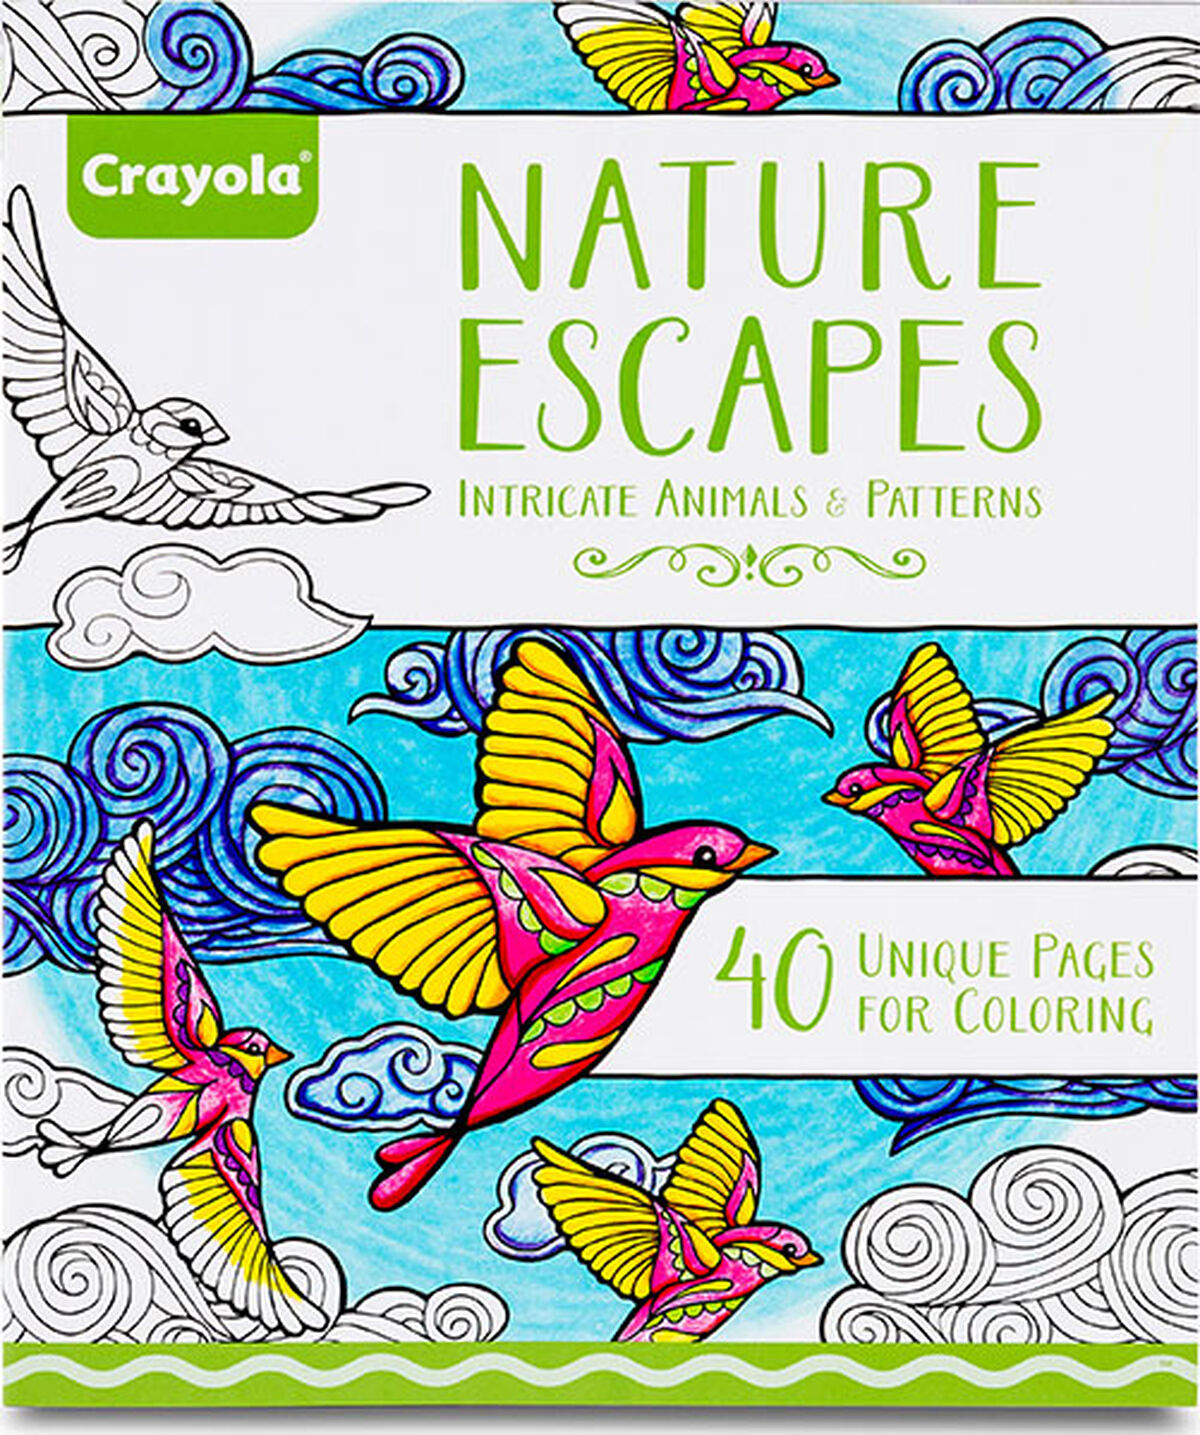 nature escapes coloring books - Crayola Coloring Book